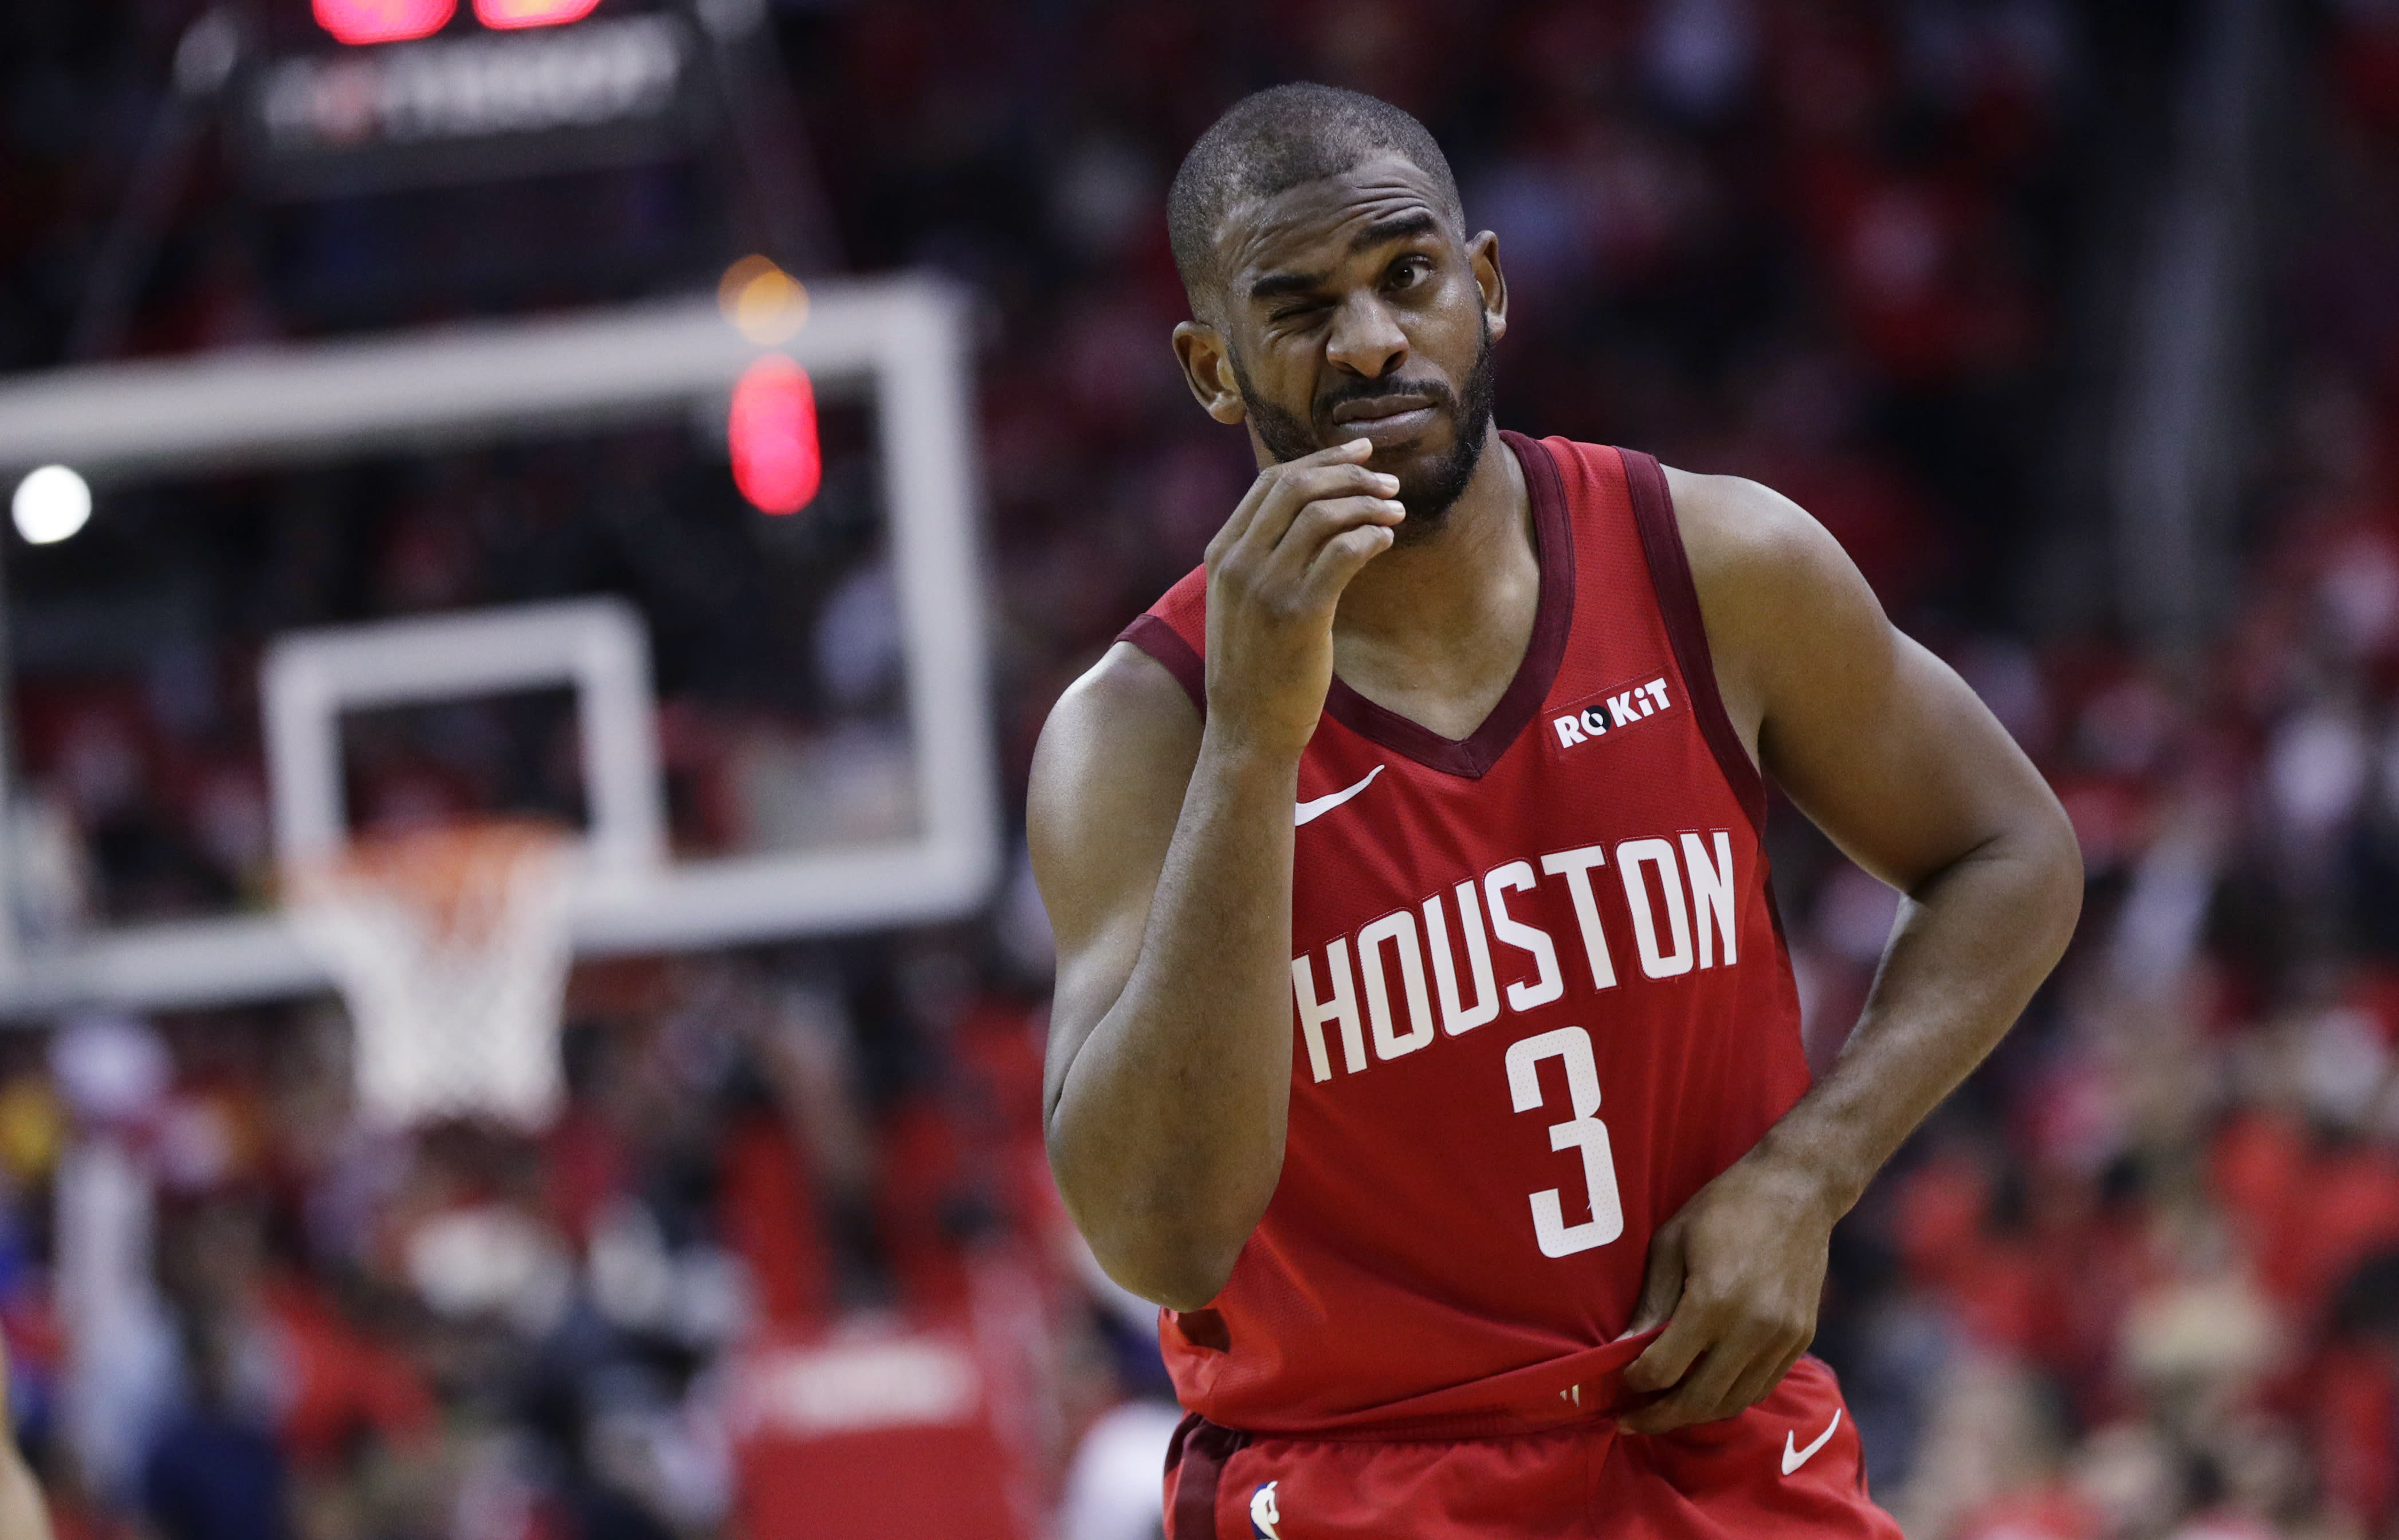 Knicks reportedly turn down Rockets' trade offer for Chris Paul